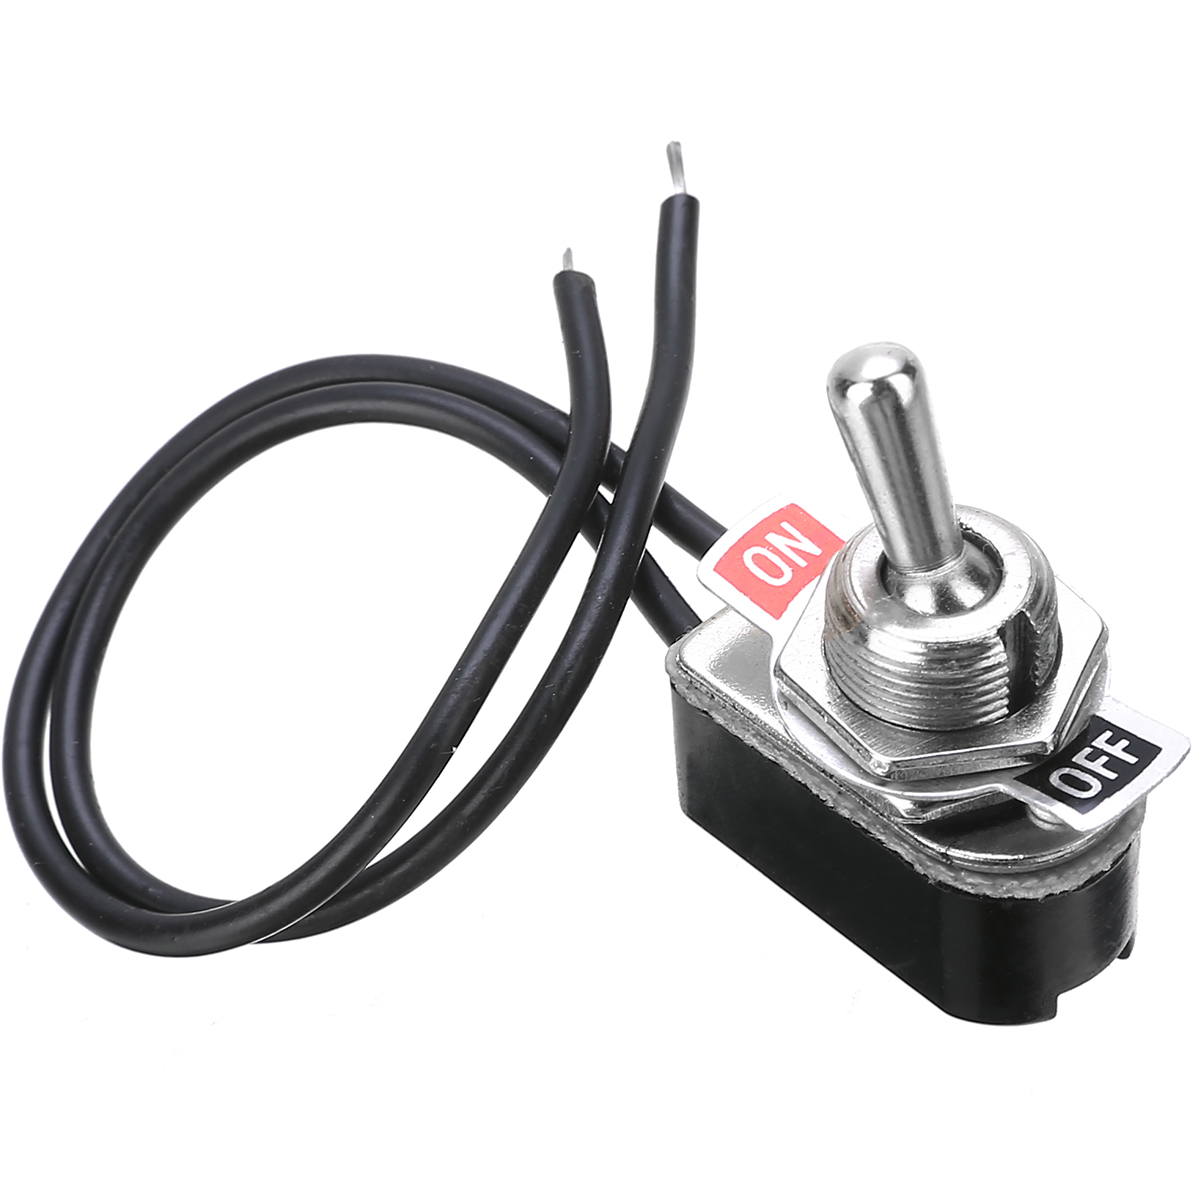 AC 250V 6A On/Off Prewired Standard Toggle Switch With Wire Cable KNS-1 SPST Contacts Switch Electrical Equipment